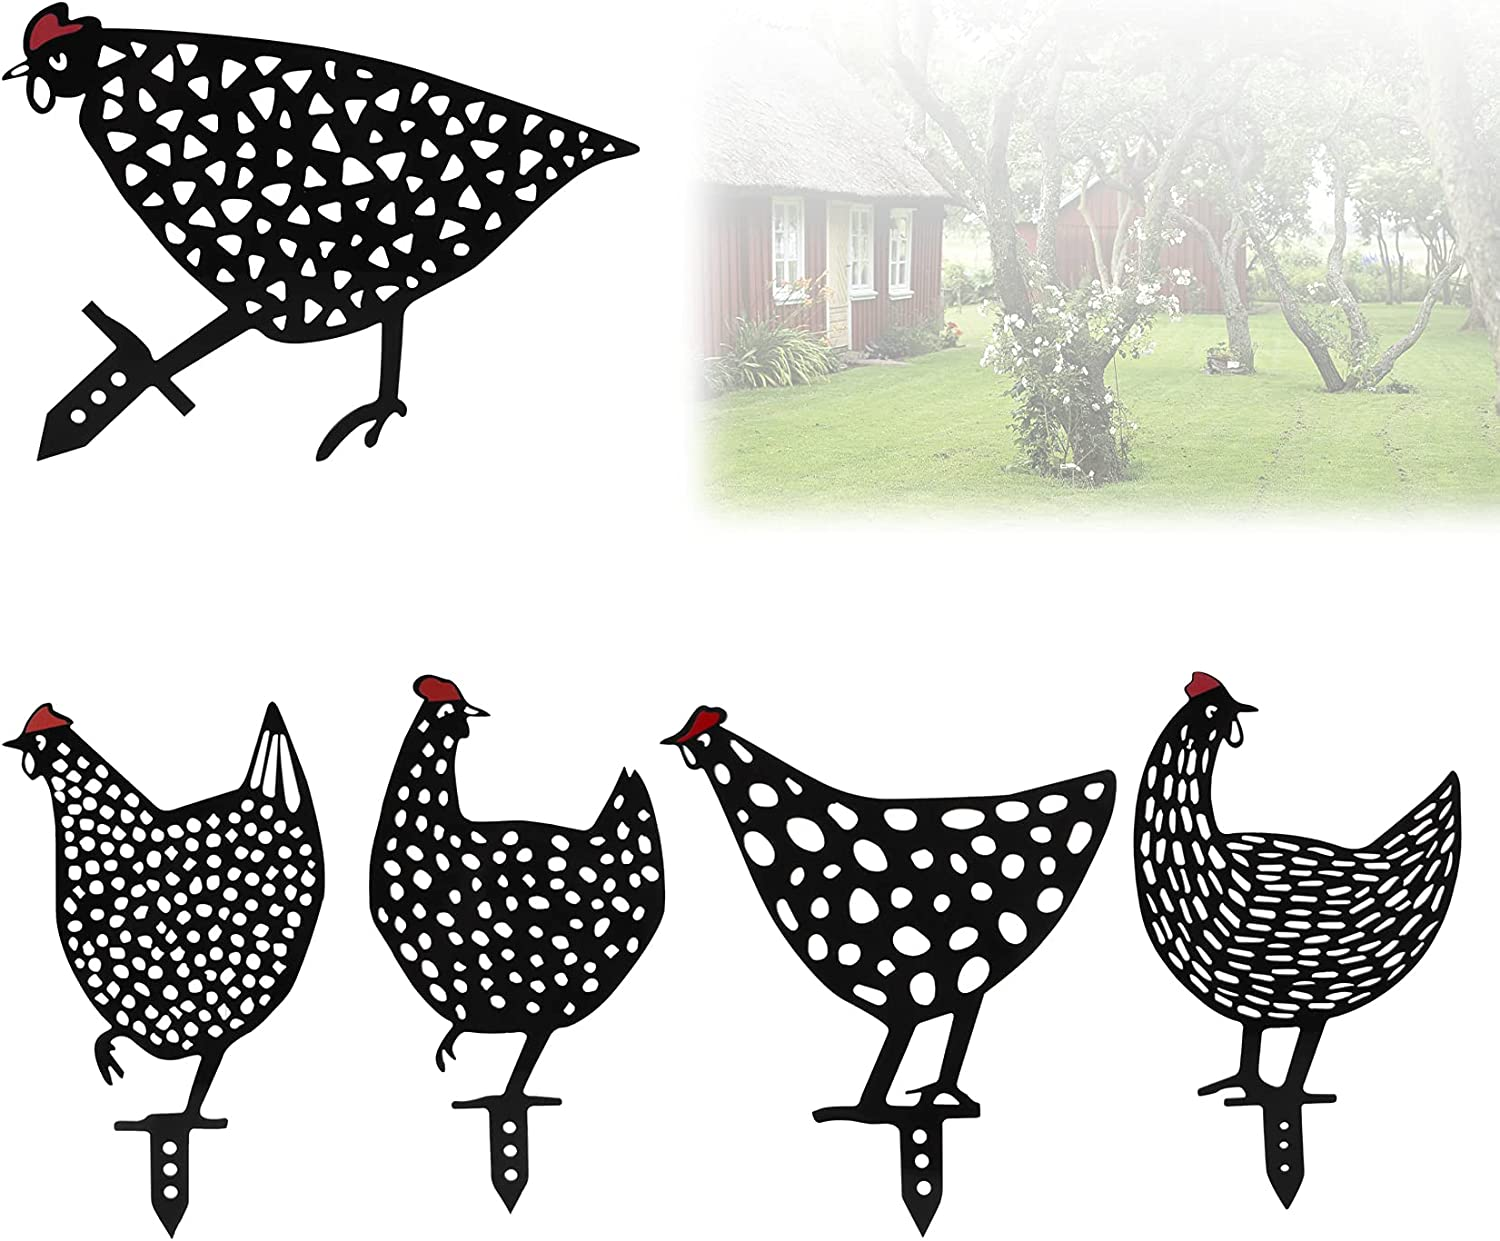 5 Pack Black Chicken Yard Art Garden Decor for Outside, Acrylic Rooster Silhouette Lawn Decoration Garden Sign Stakes, Porch Spring Animal Decorations Outdoor for Christmas, Thanksgiving